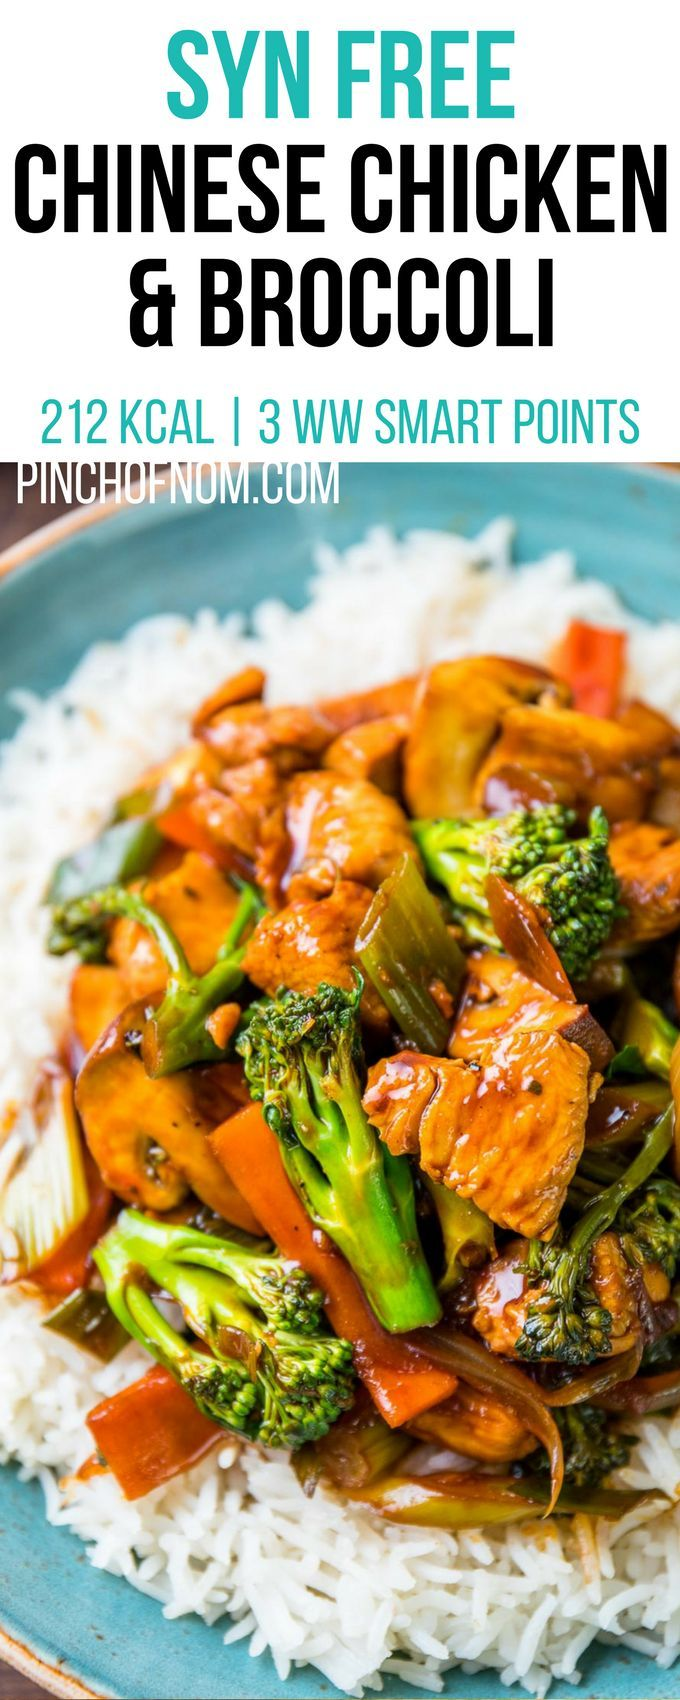 Syn Free Chinese Chicken and Broccoli   Pinch Of Nom ...